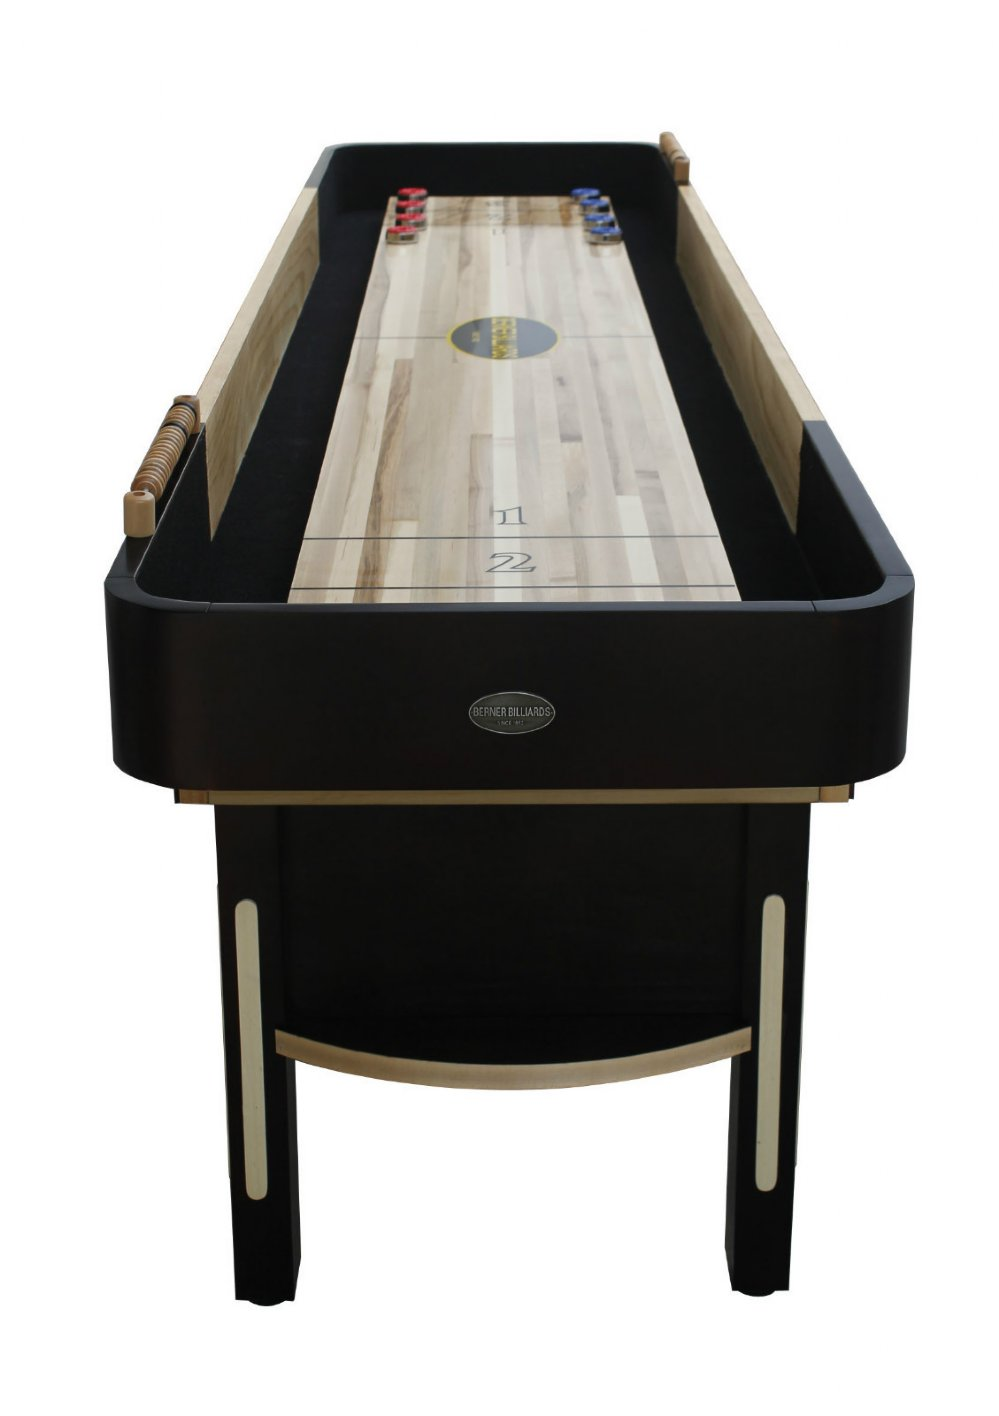 Berner Billiards Premier Limited Edition Shuffleboard Table in